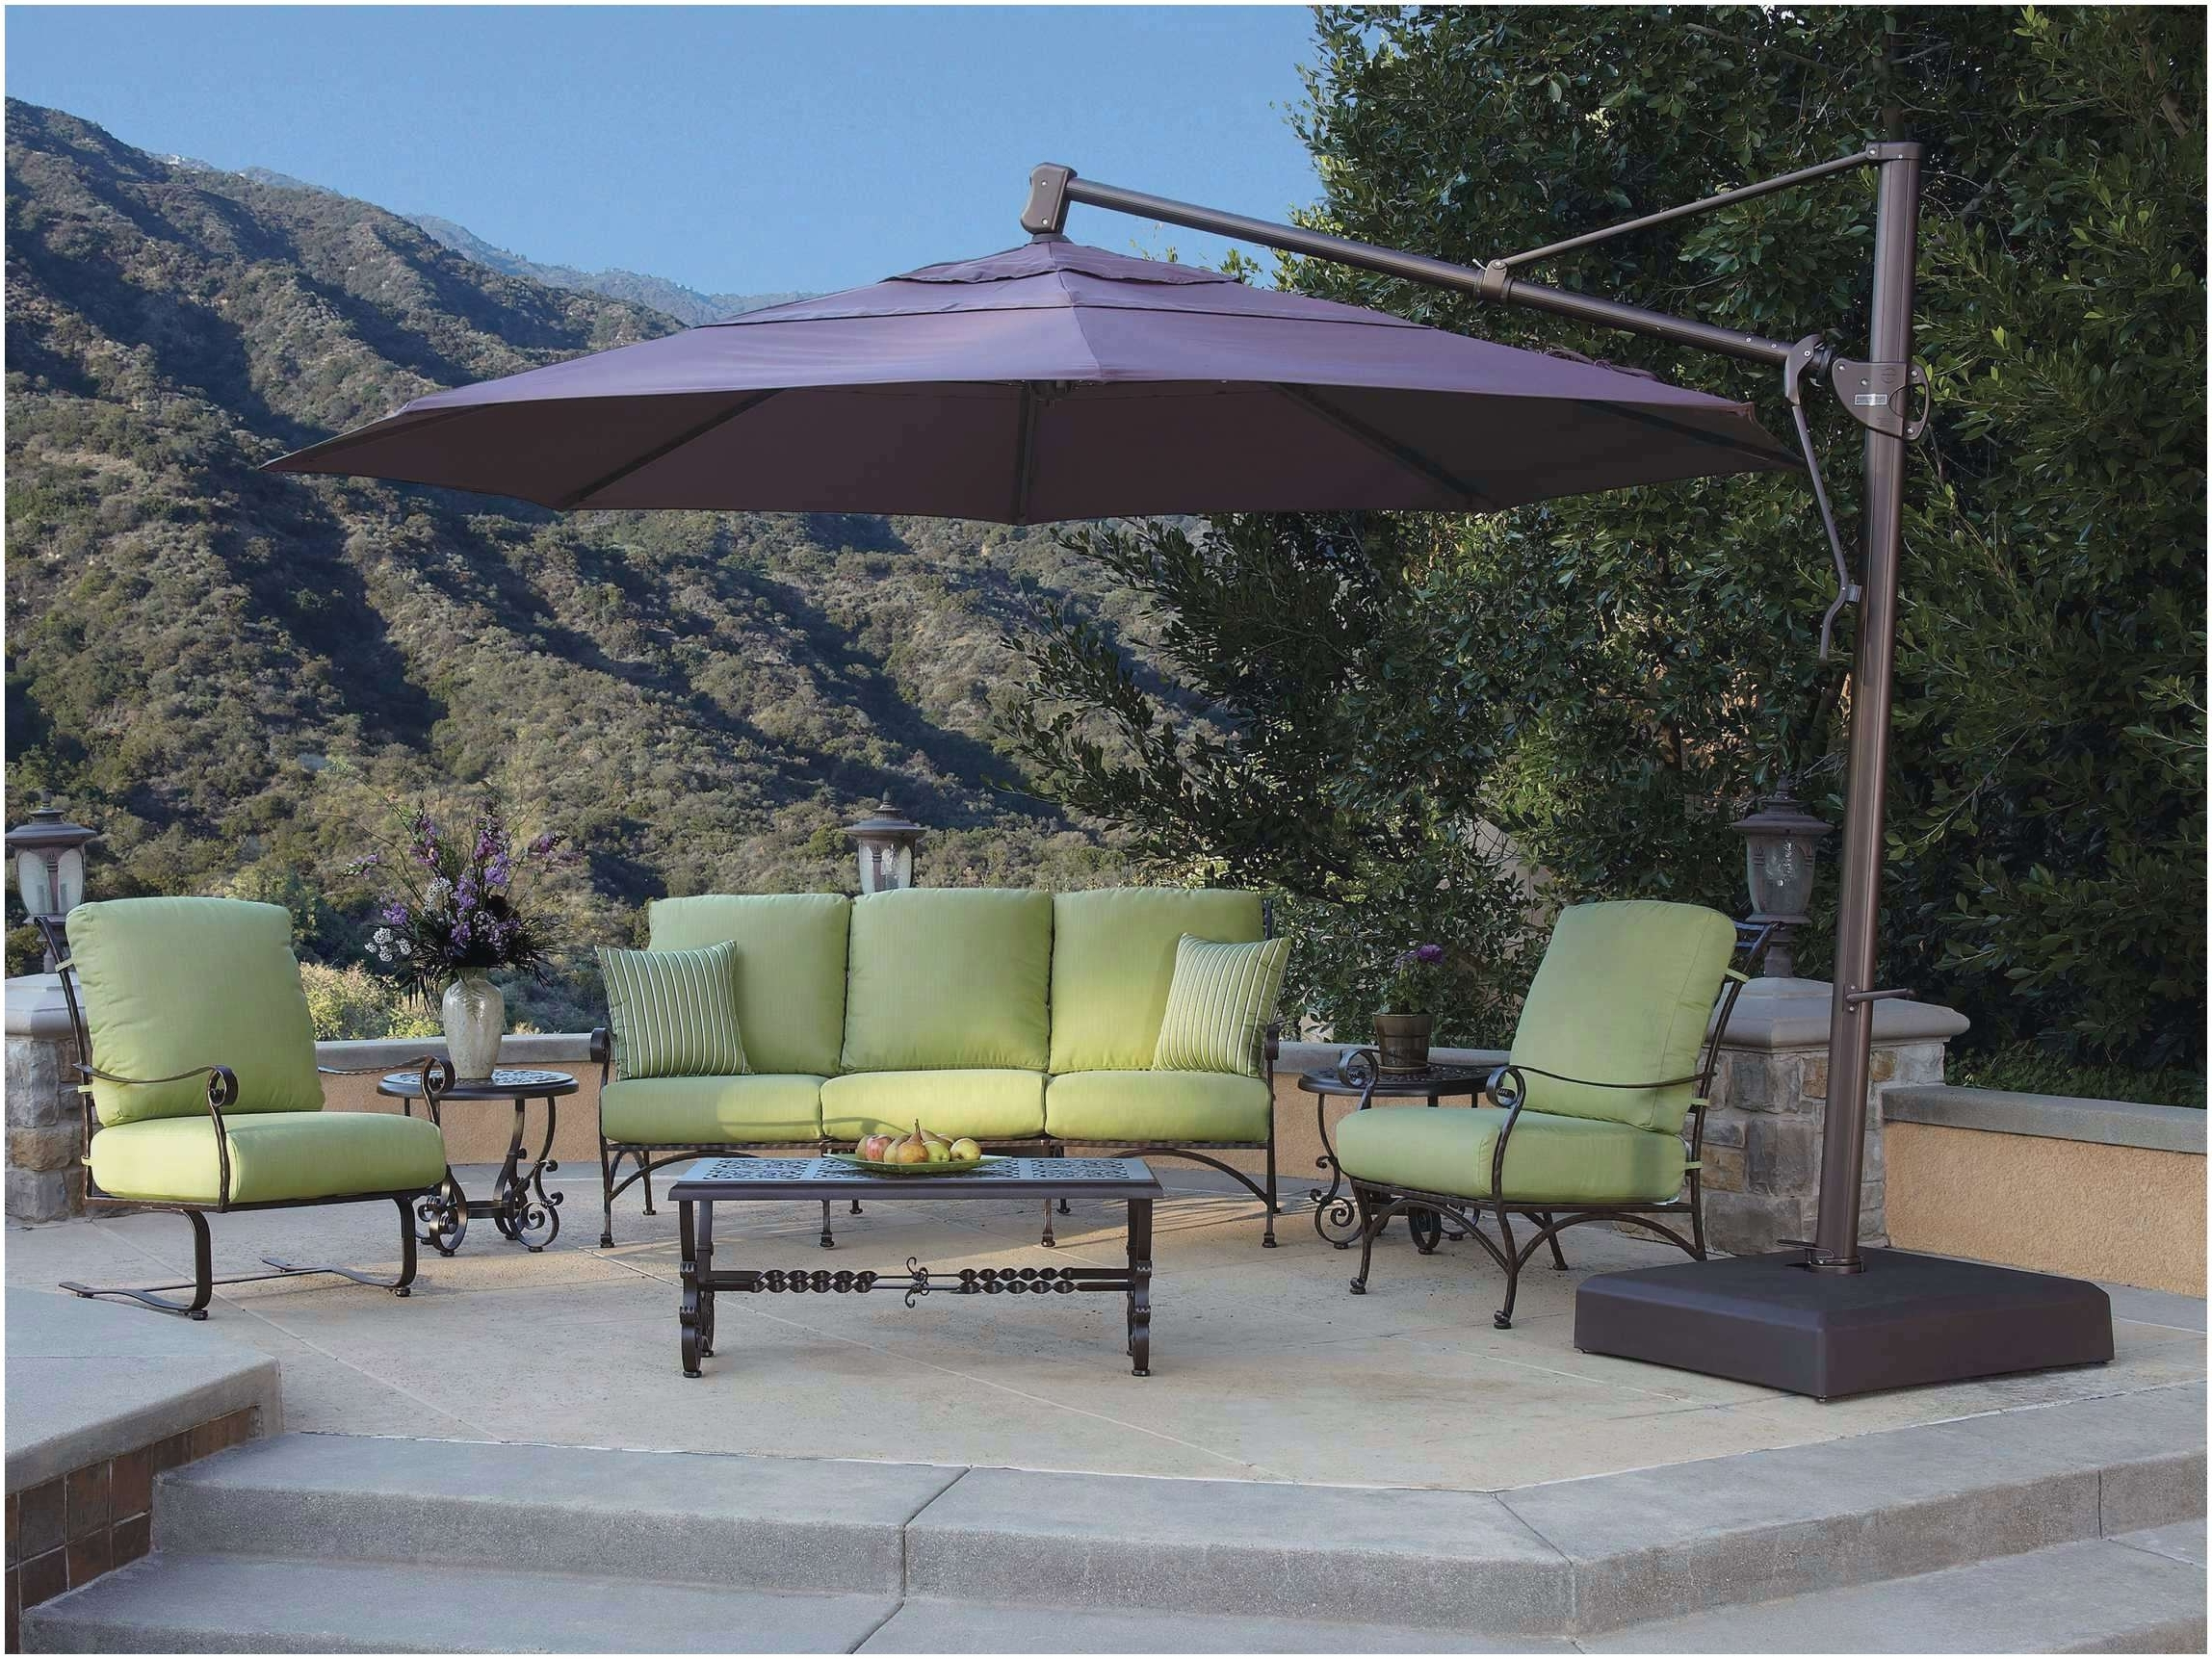 Garden Treasures Patio Umbrellas With Regard To Favorite Garden Treasures Umbrella Replacement Canopy The Right Choice Extra (View 9 of 20)